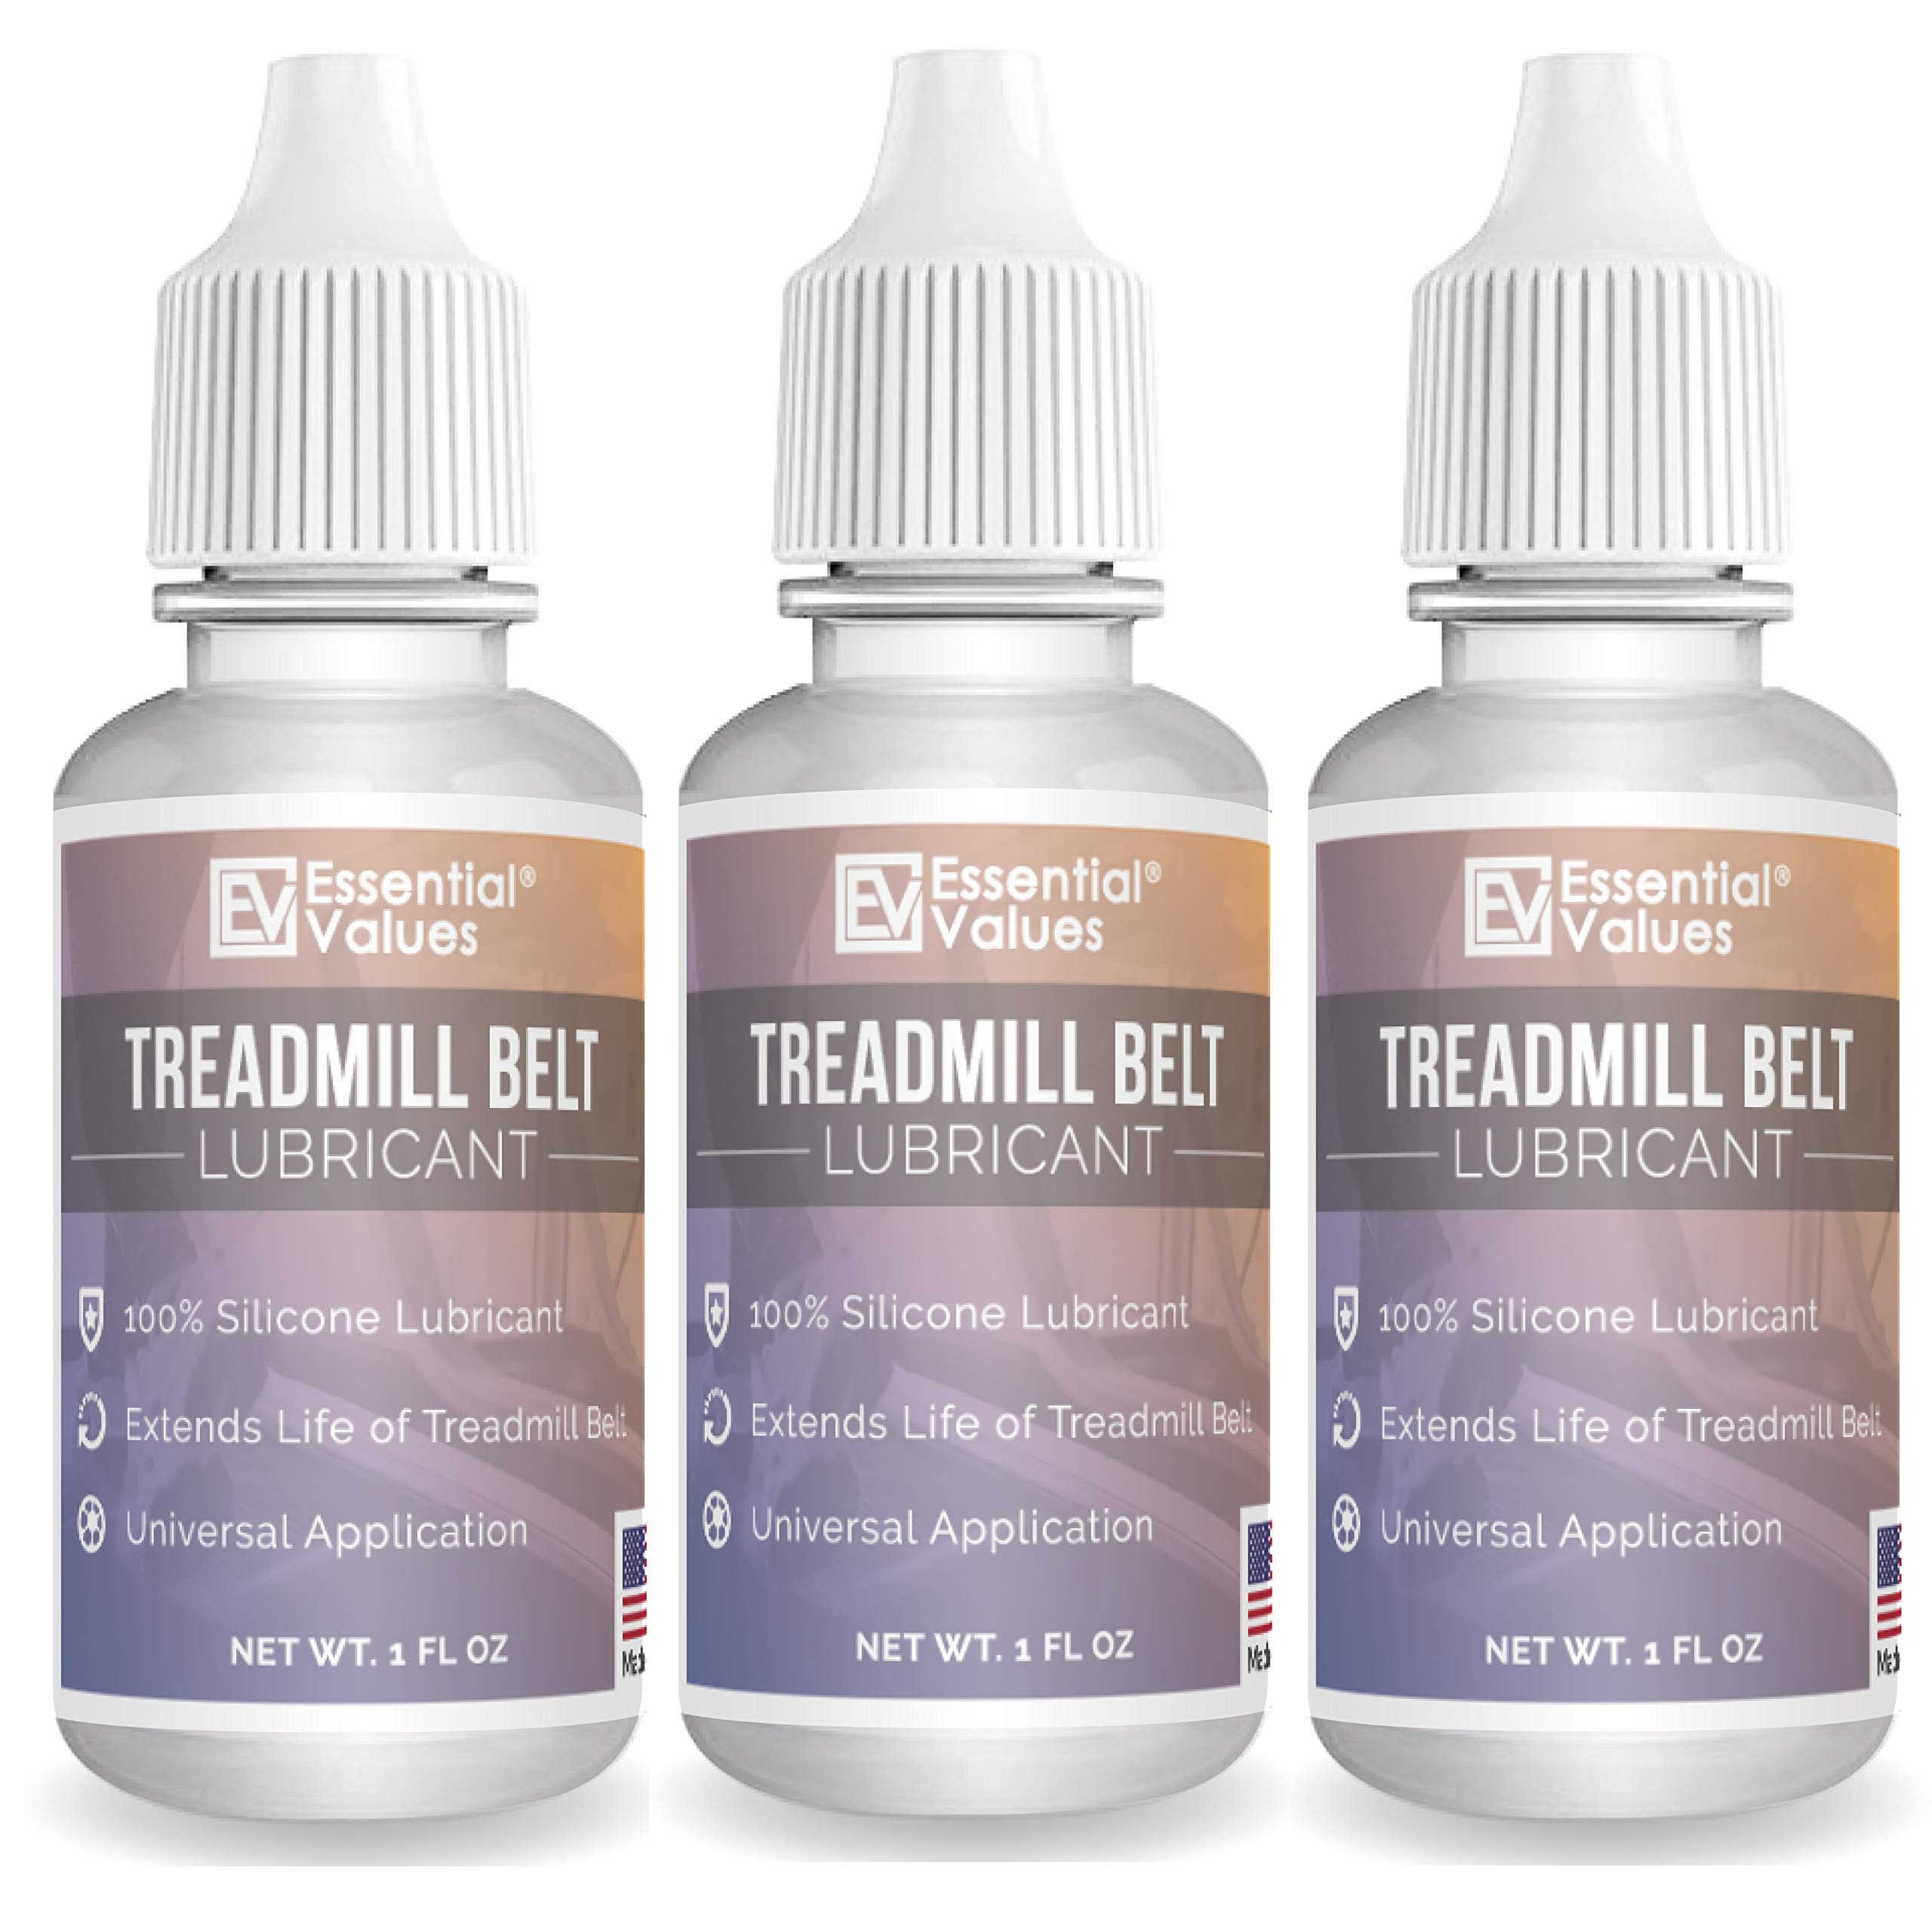 3-Pack Essential Values Treadmill Belt Lubricant - Odorless & Toxin-Free Silicone Oil - Silicone Lubricant Reduces Noise - Easy Squeeze Flow Treadmill Lubricant Universal Treadmill Lube